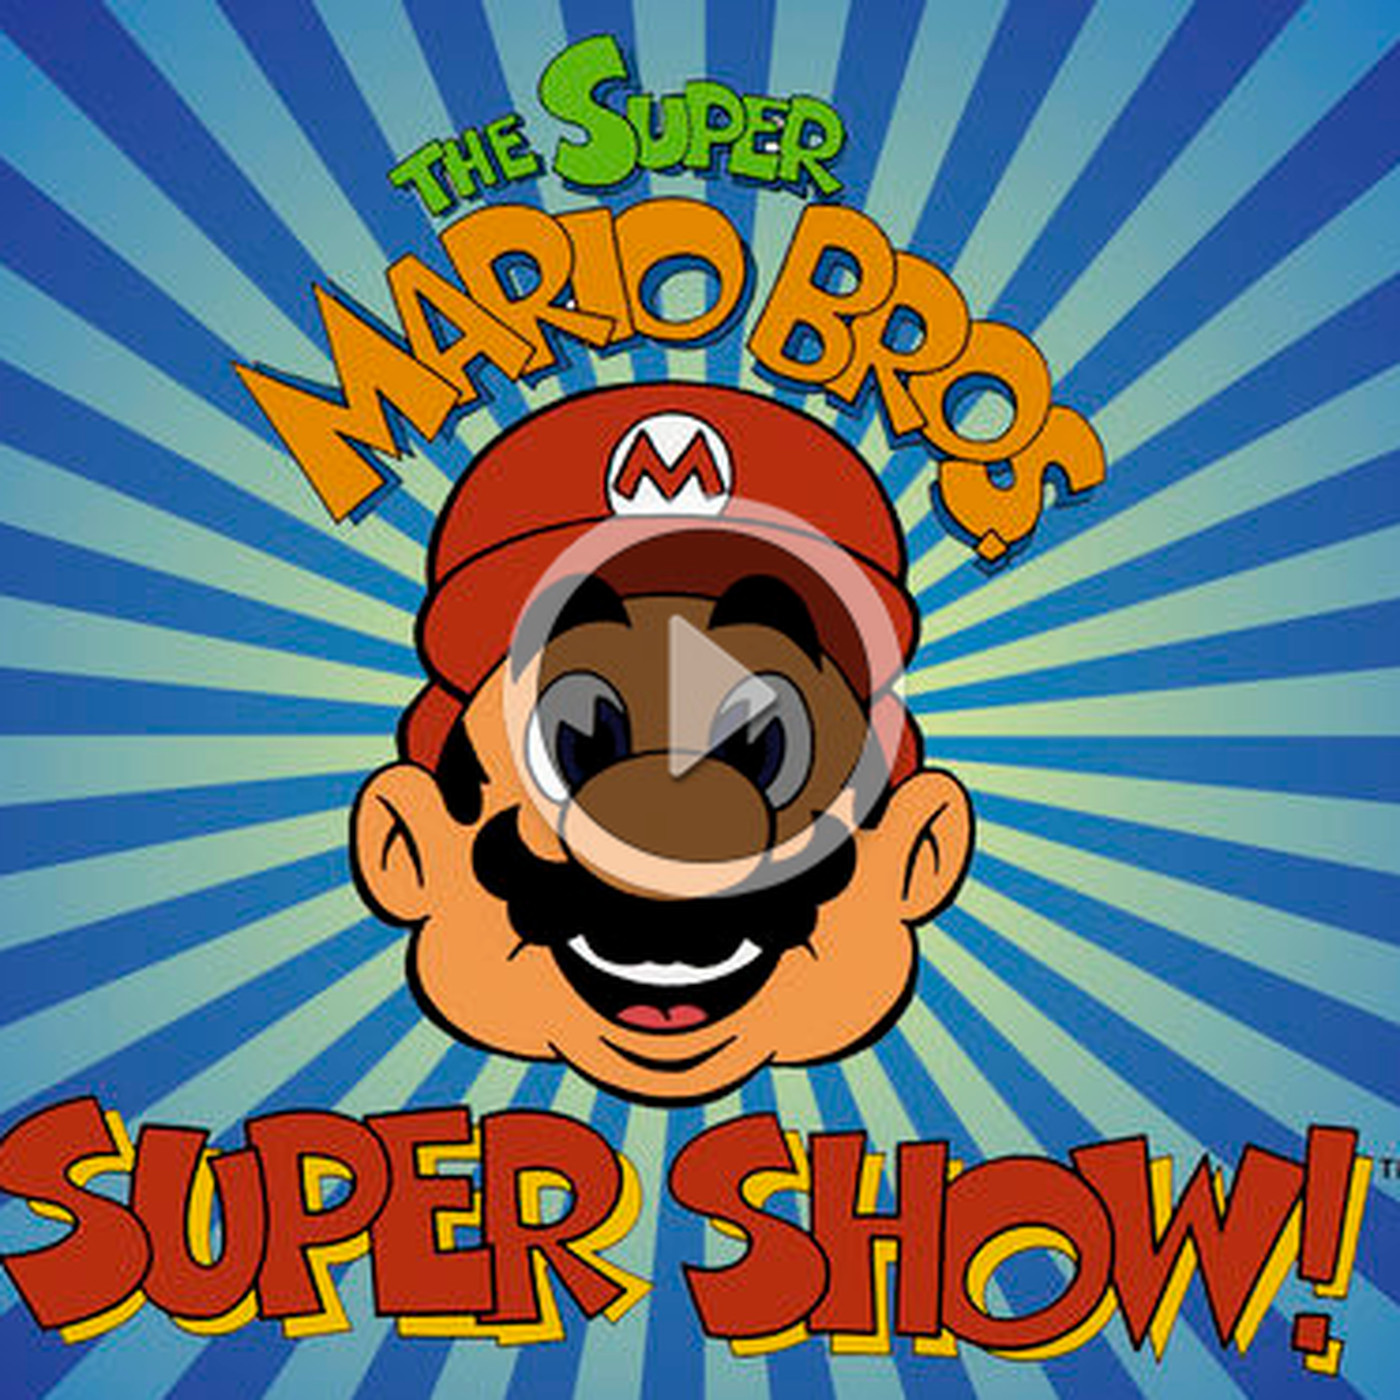 Watch This Waste The Weekend With The Super Mario Bros Super